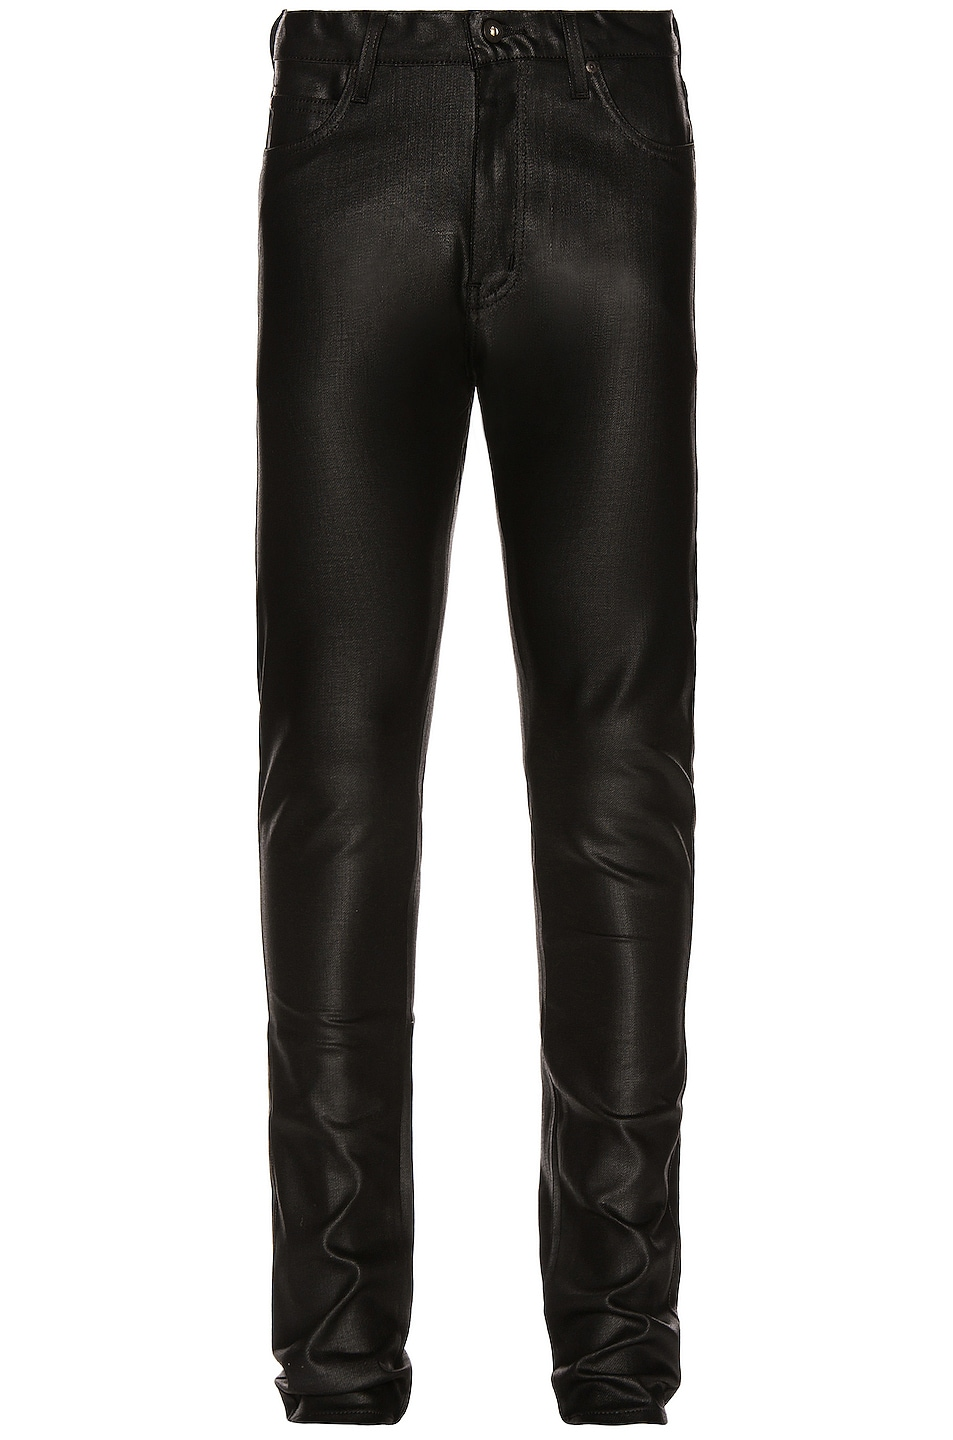 Image 1 of Naked & Famous Denim Stacked Guy 12oz Black Waxed Stretch in Black